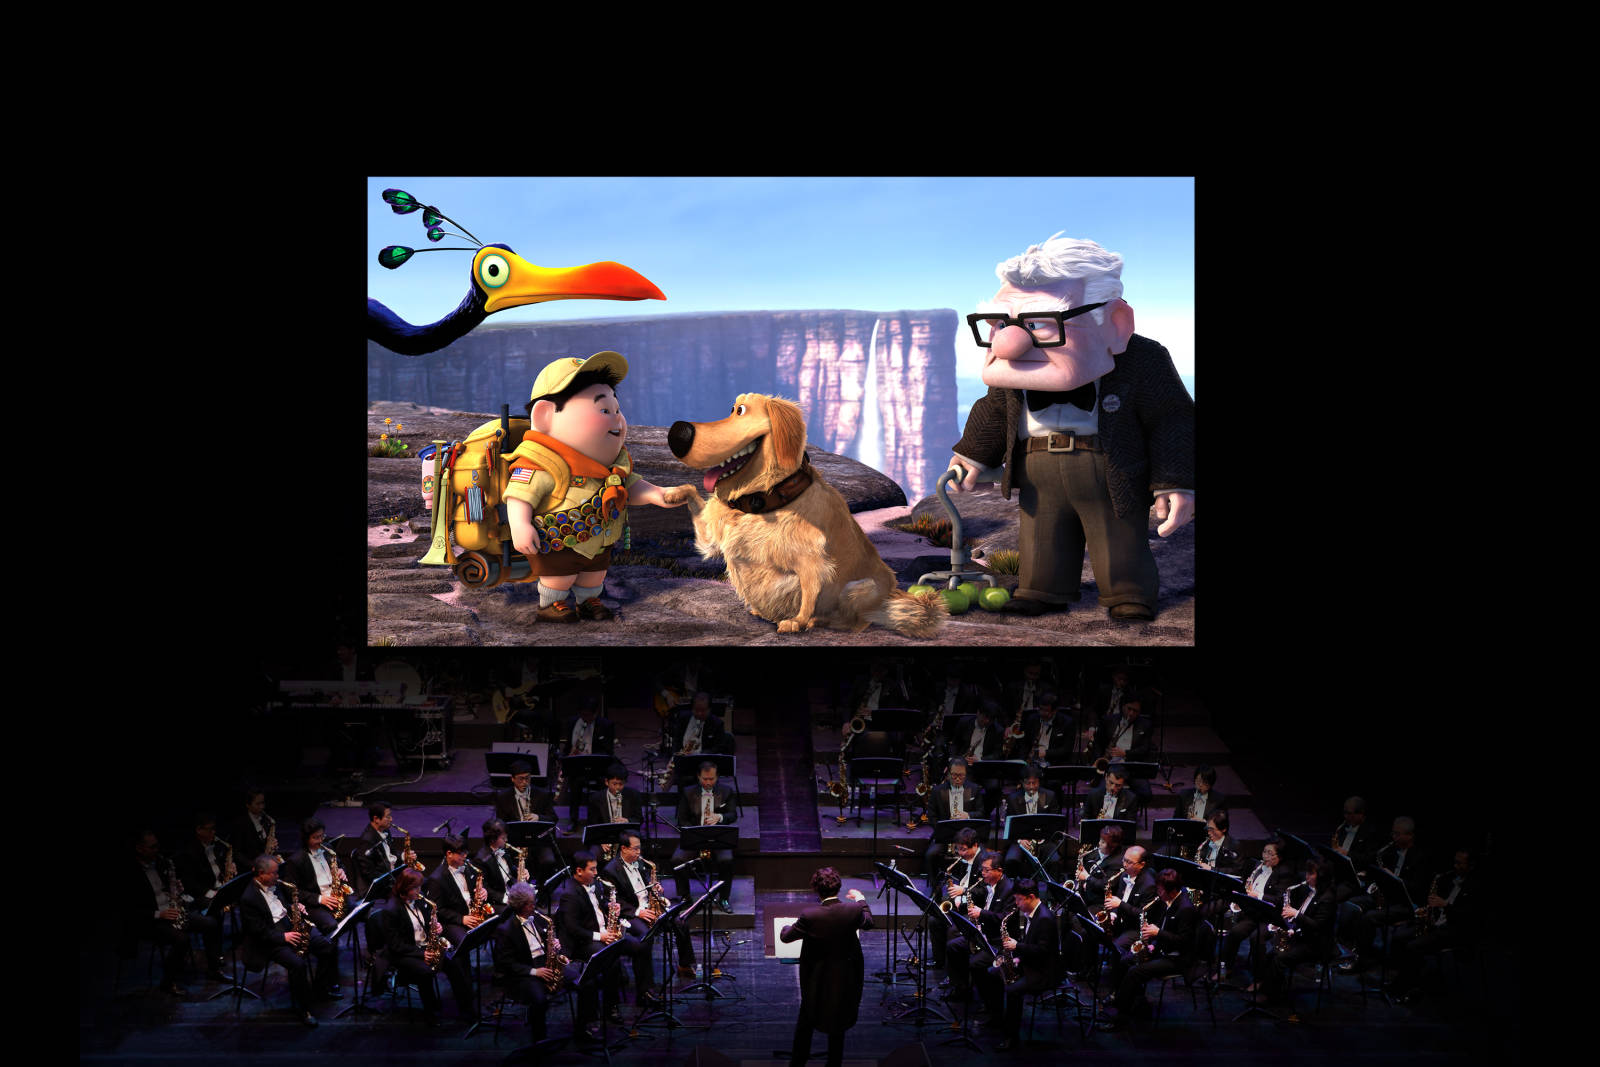 Disney Pixar Up In Concert - Live-To-Picture Concert Events